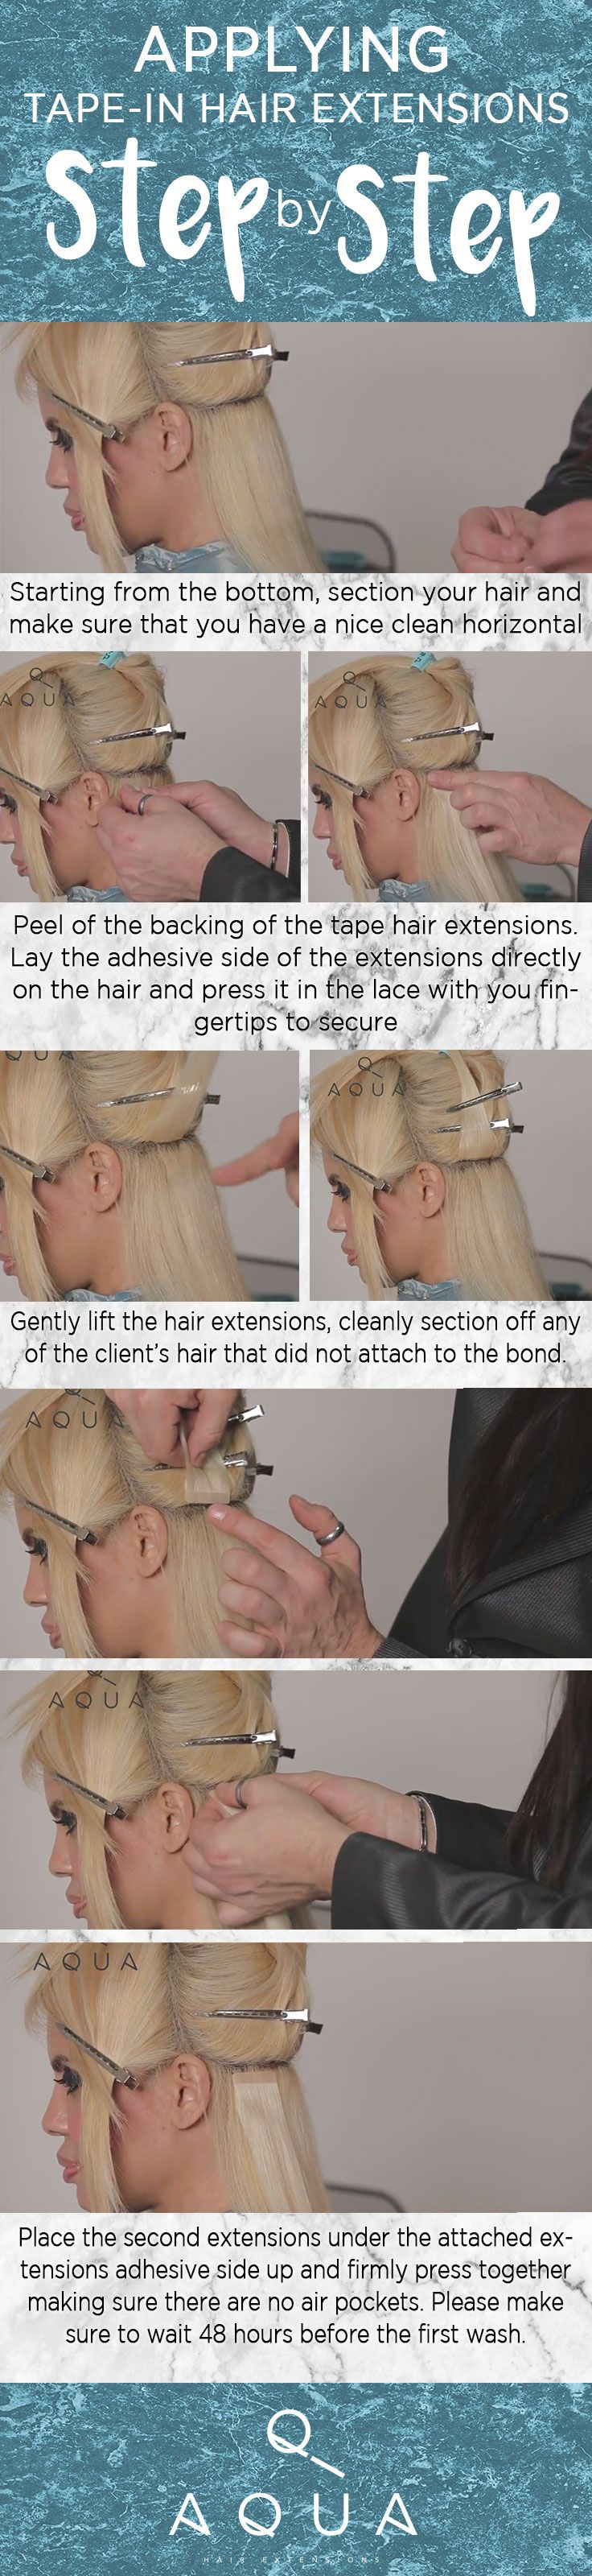 Applying Tape-in Hair Extension Step By Step Picture 1 Starting from the bottom, section your hair and make sure that you have a nice clean horizontal line in your hair.Picture 2 +3 Peel of the backing of the tape hair extensions. Lay the adhesive side of the extensions directly on the hair and press it in the lace with you fingertips to securePicture 4 +5 Gently lift the hair extensions, cleanly section off any of the client's hair that did not attach to the bond.